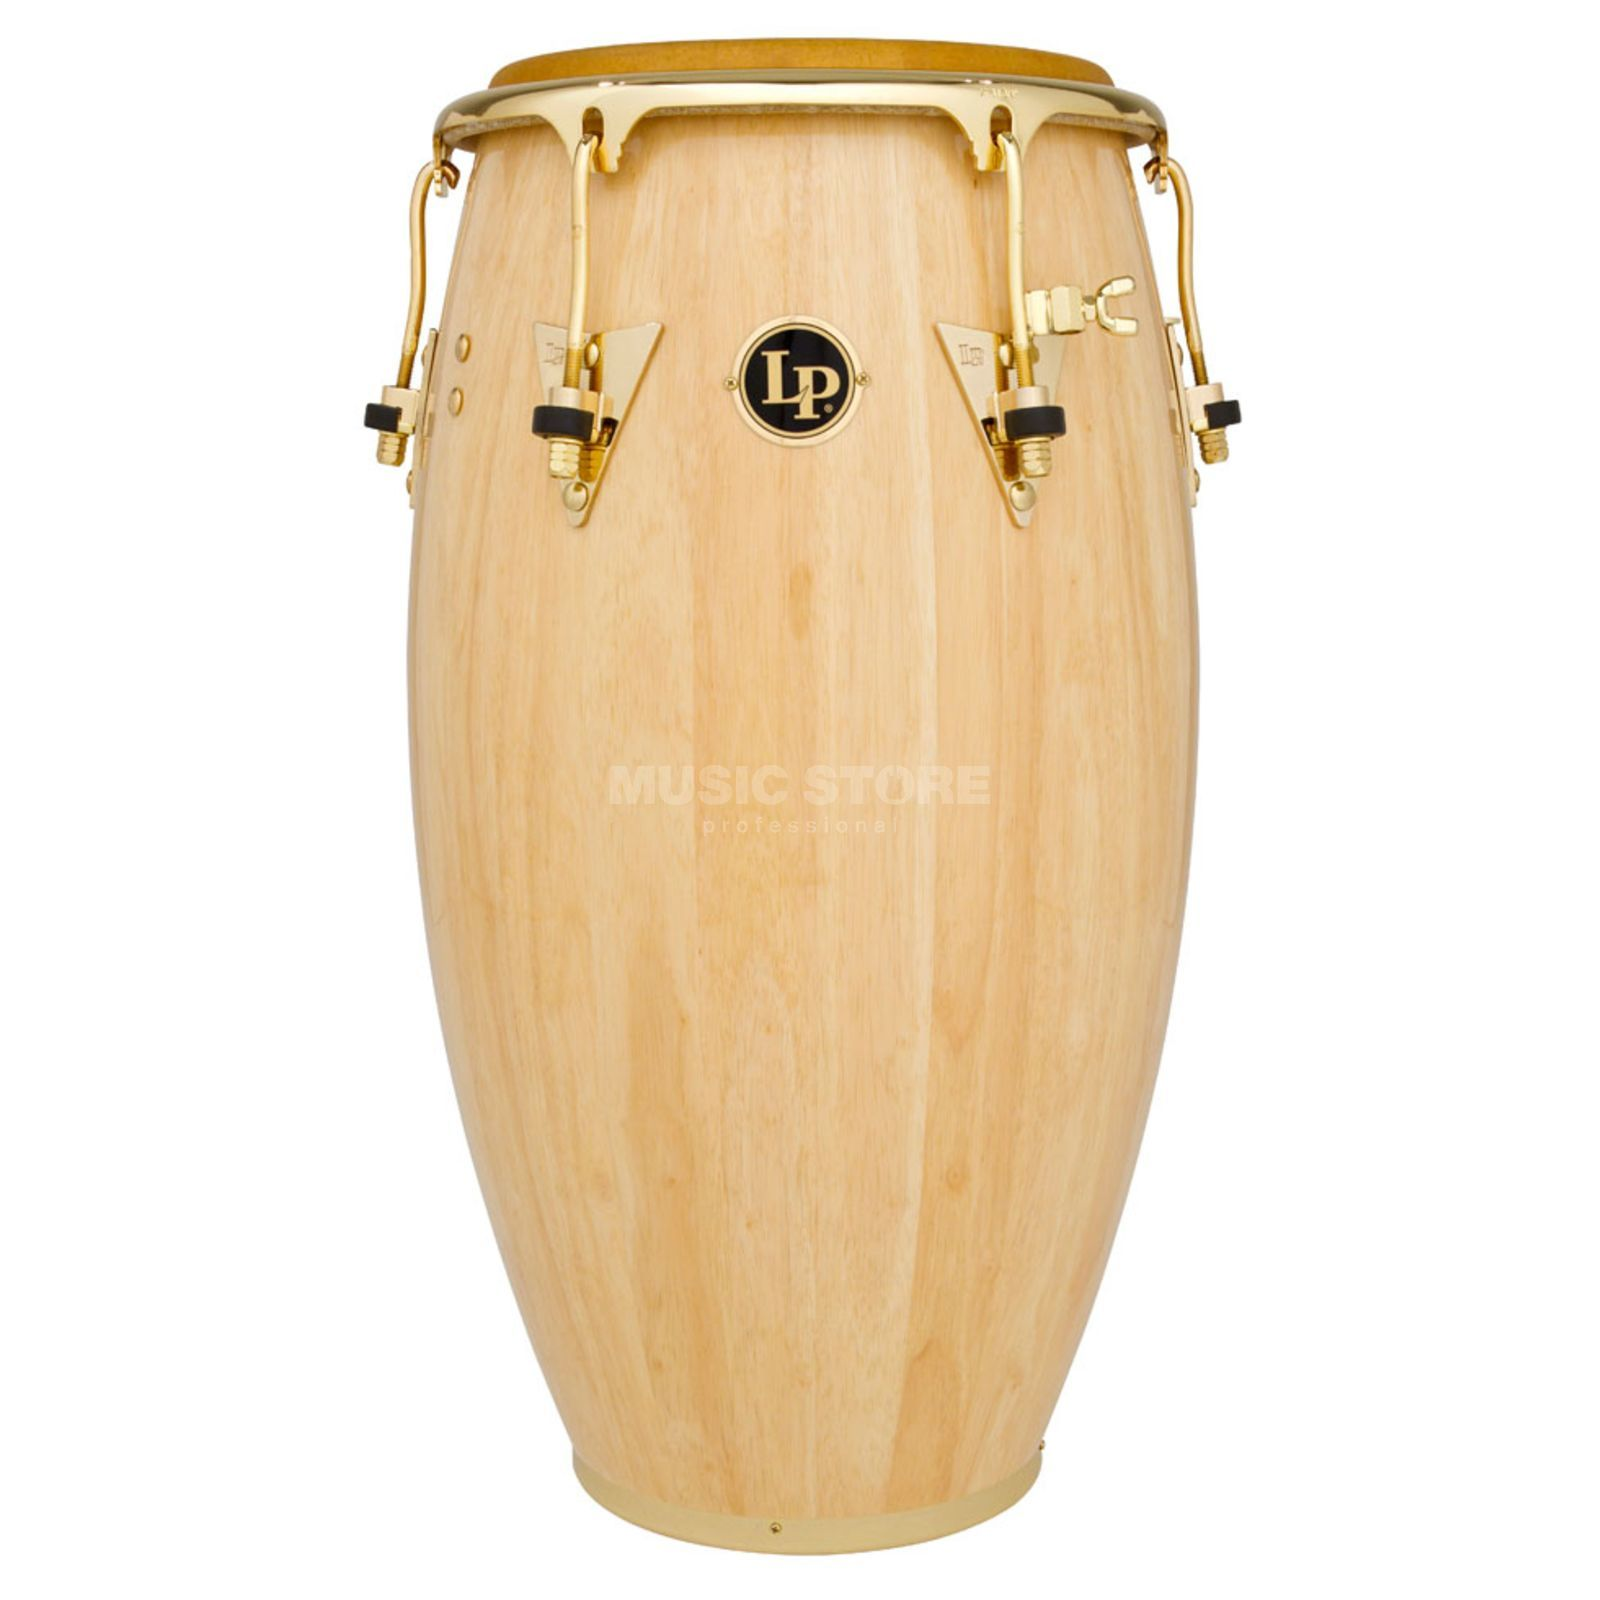 "Latin Percussion Salsa Conga LP222X-AW, 11"" Quinto, Natural Produktbild"